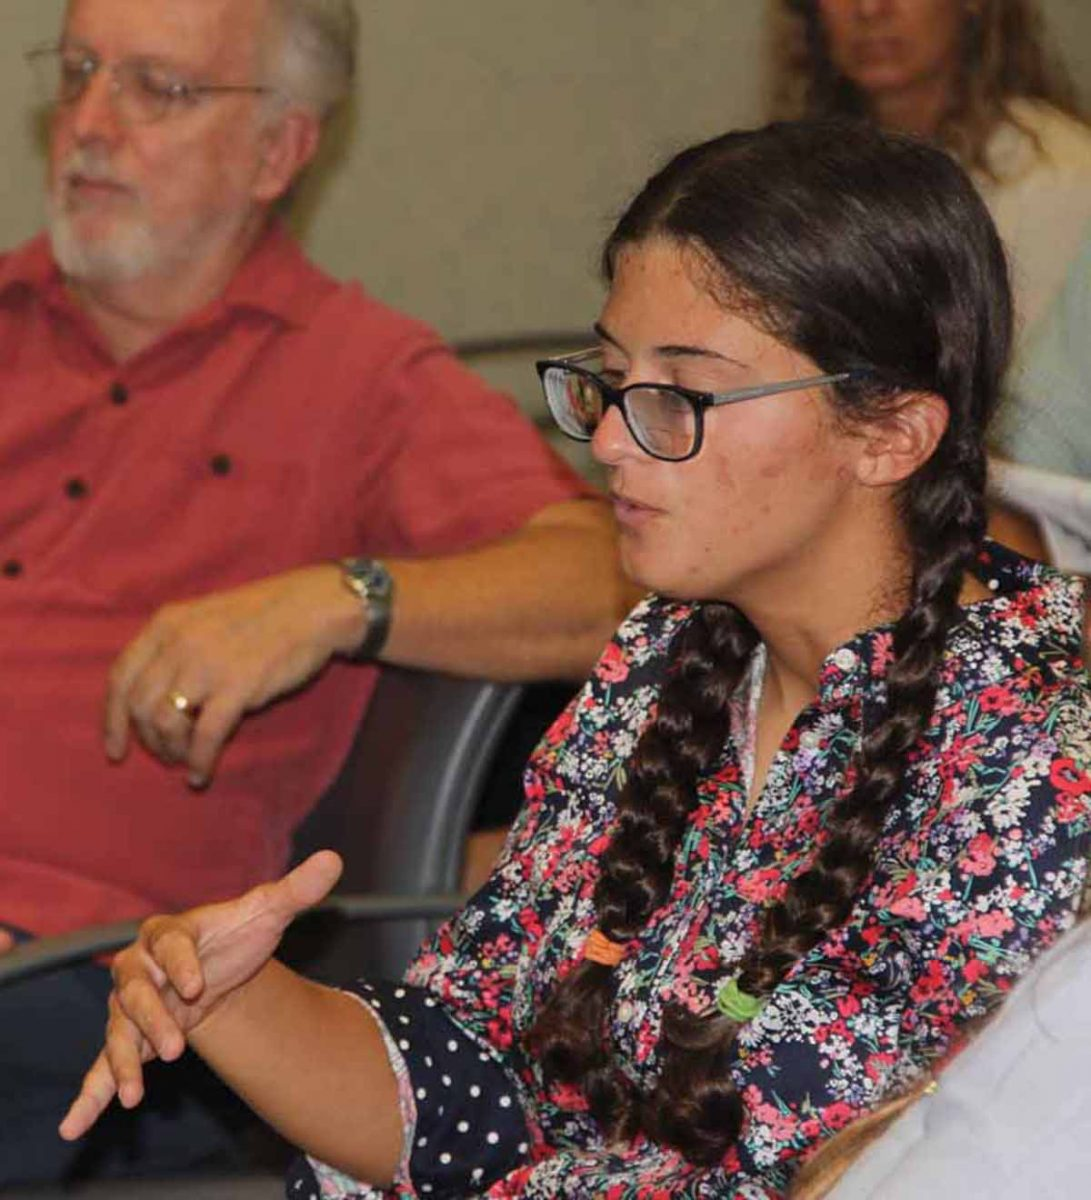 Emily Kollmer, a recent graduate of the marine vertebrate biology program at Stony Brook University, asks a question during the forum.